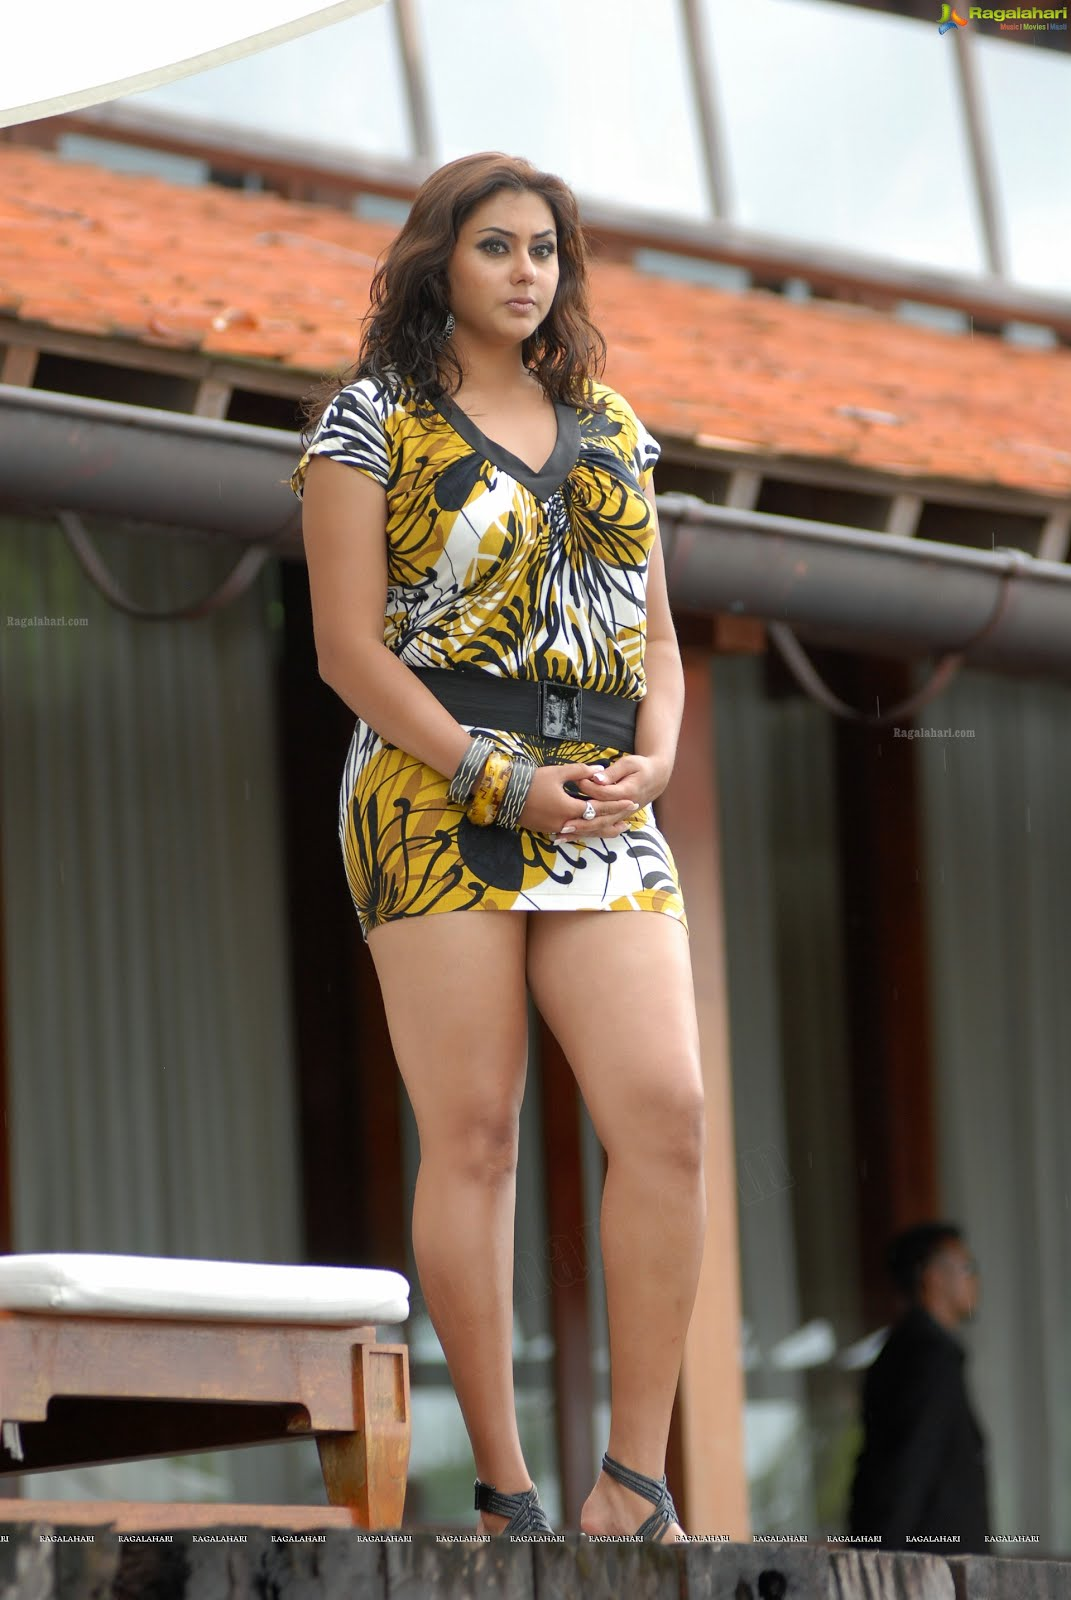 Hd Pics Namitha Very Hot Big Thighs Show Images - Wiral -6856